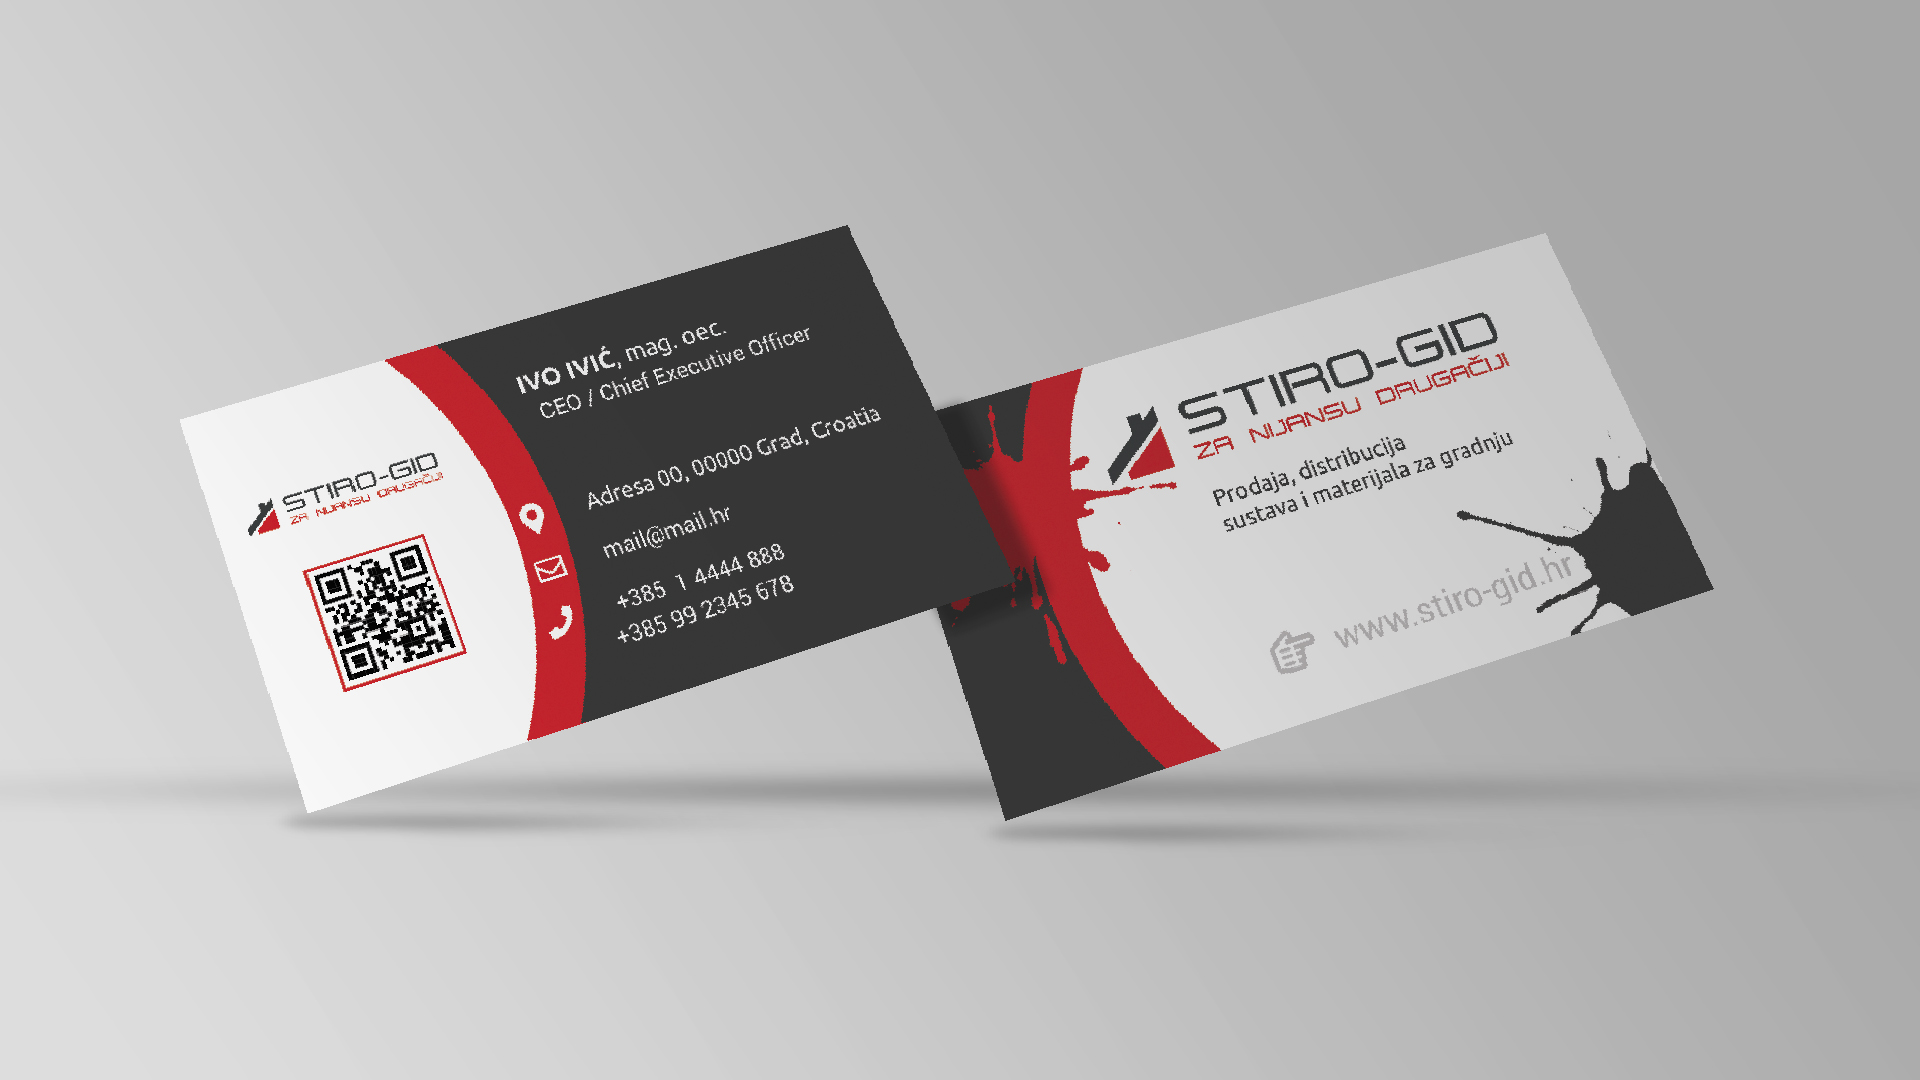 stiro-gid business cards